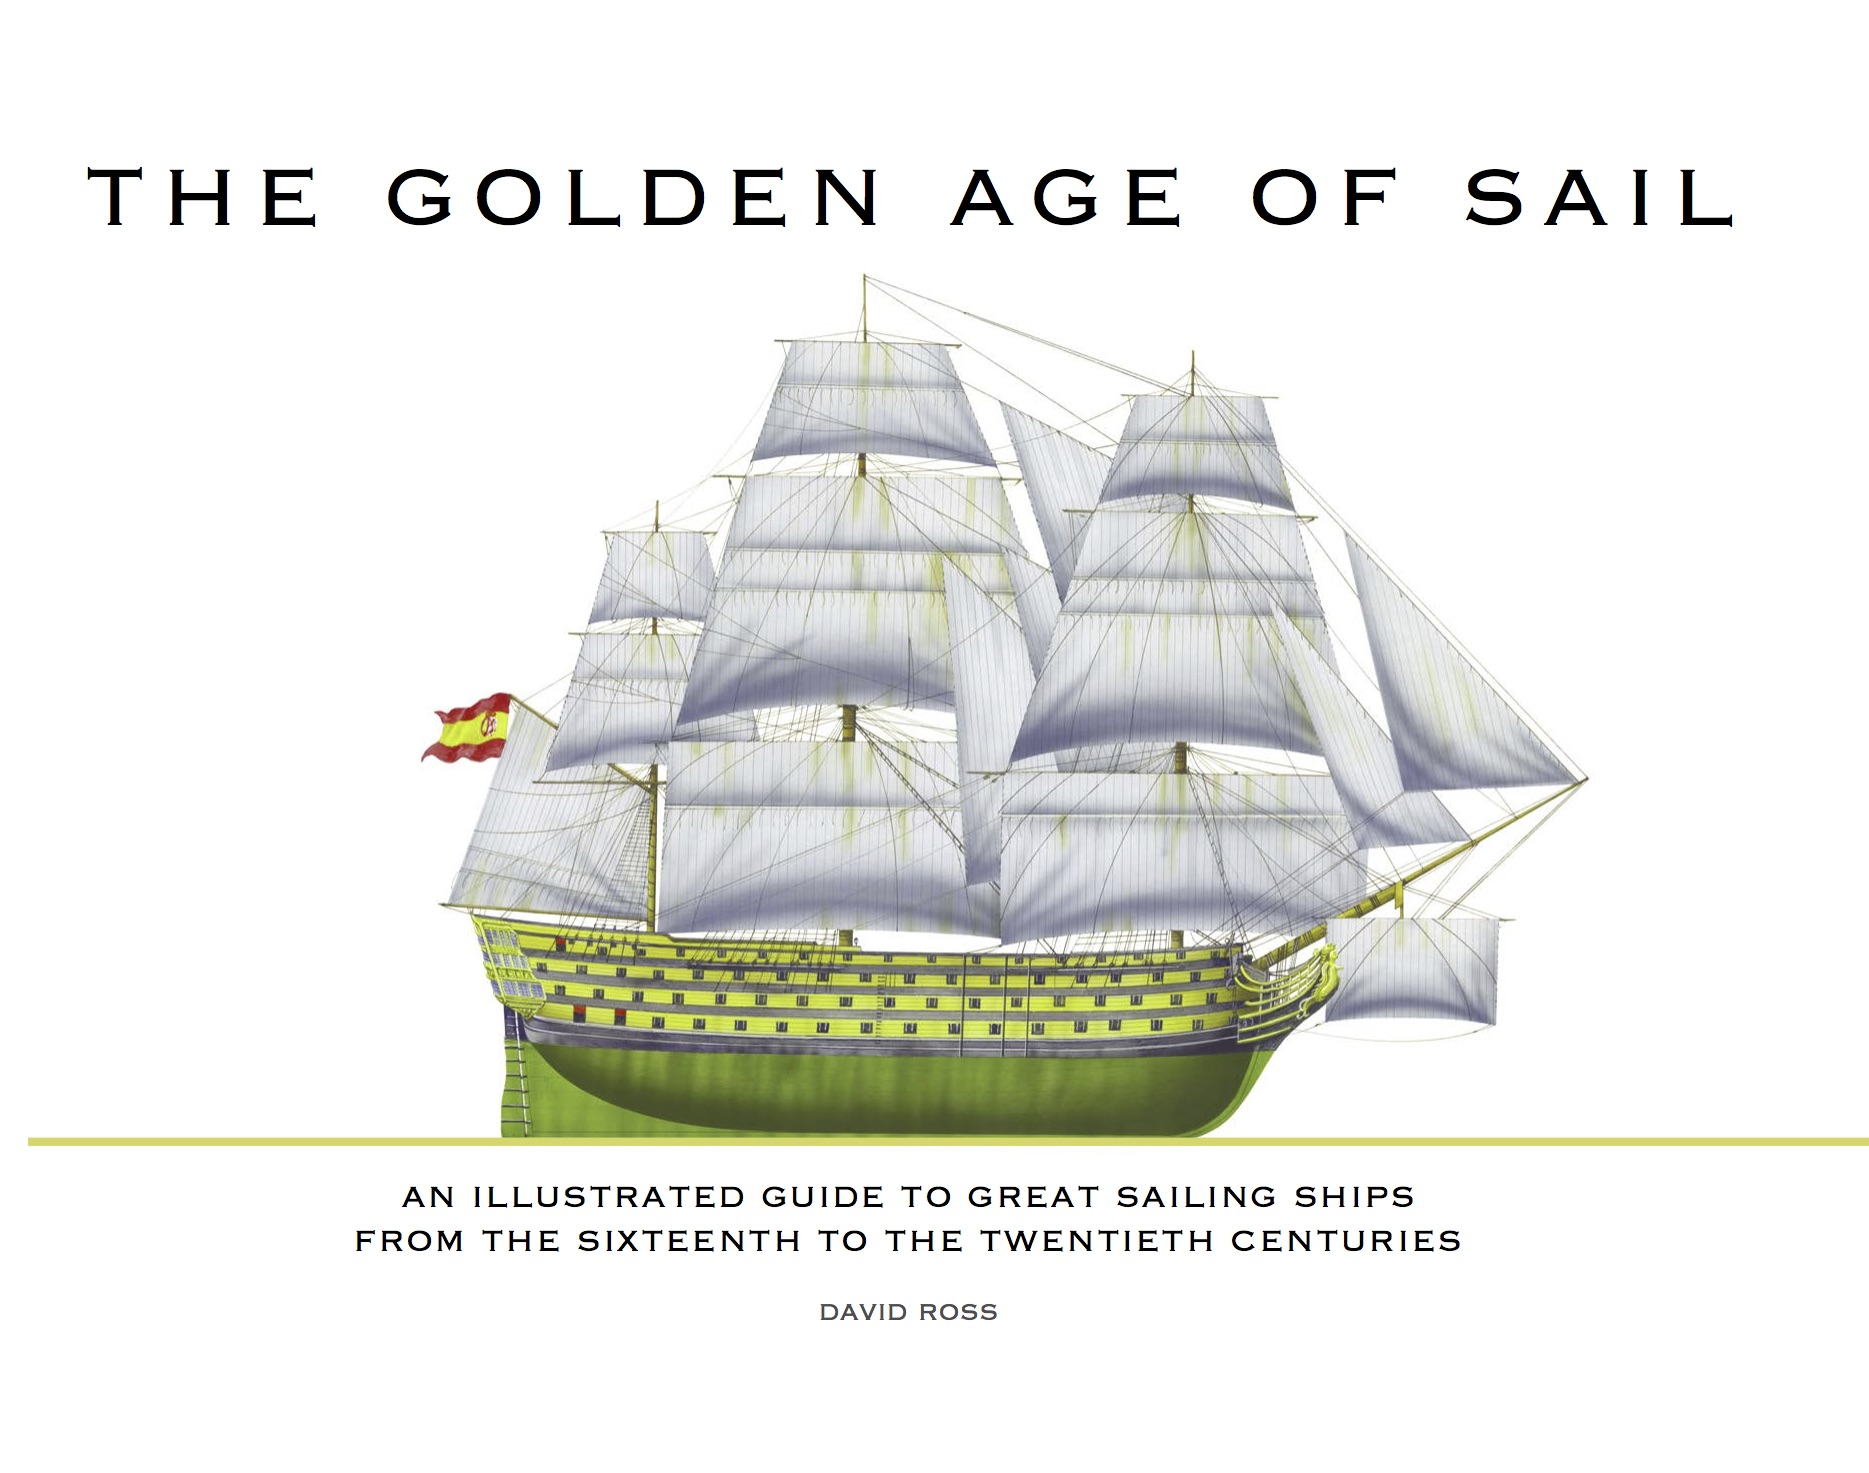 The Golden Age of Sail